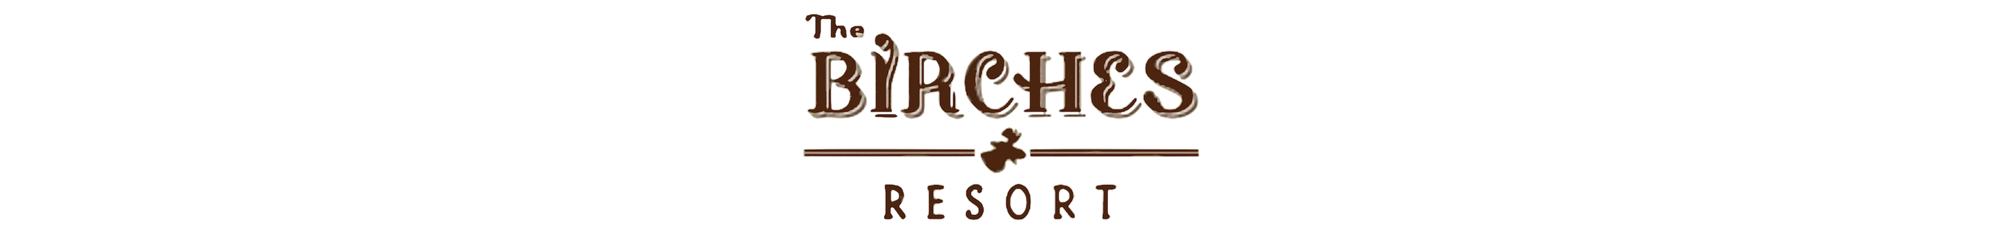 The Birches Resort